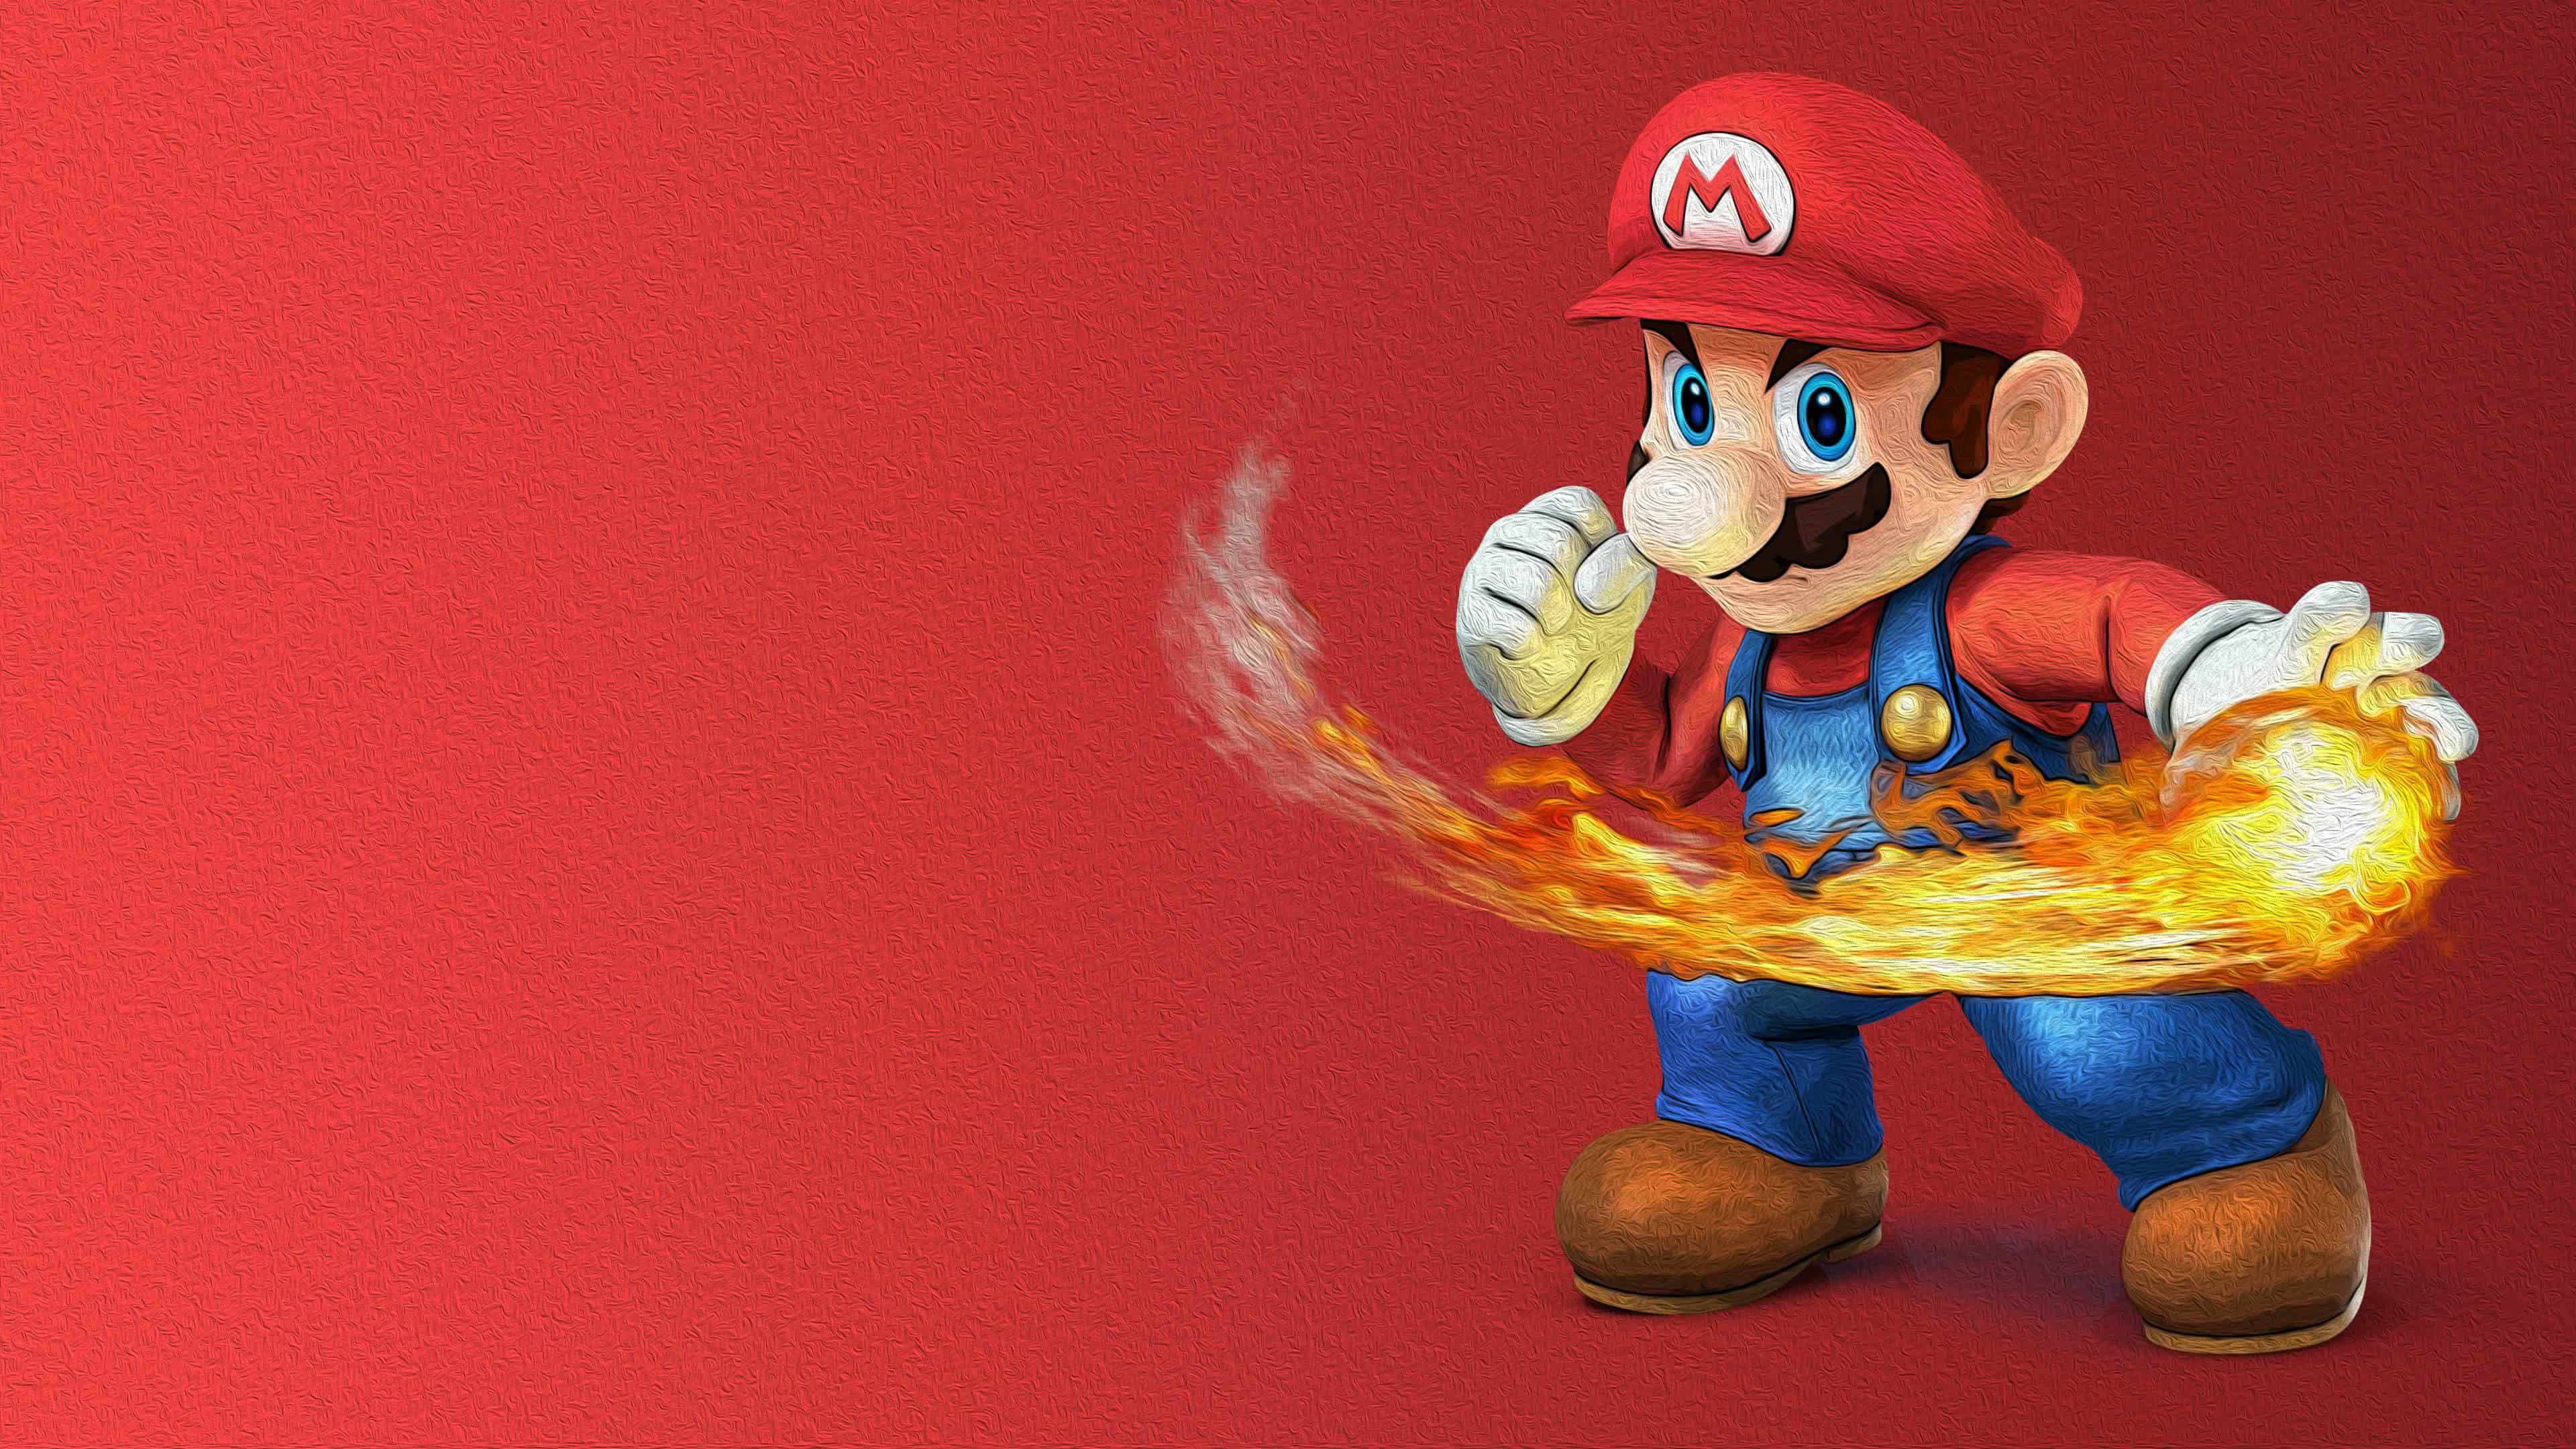 new super mario bros wallpaper hd